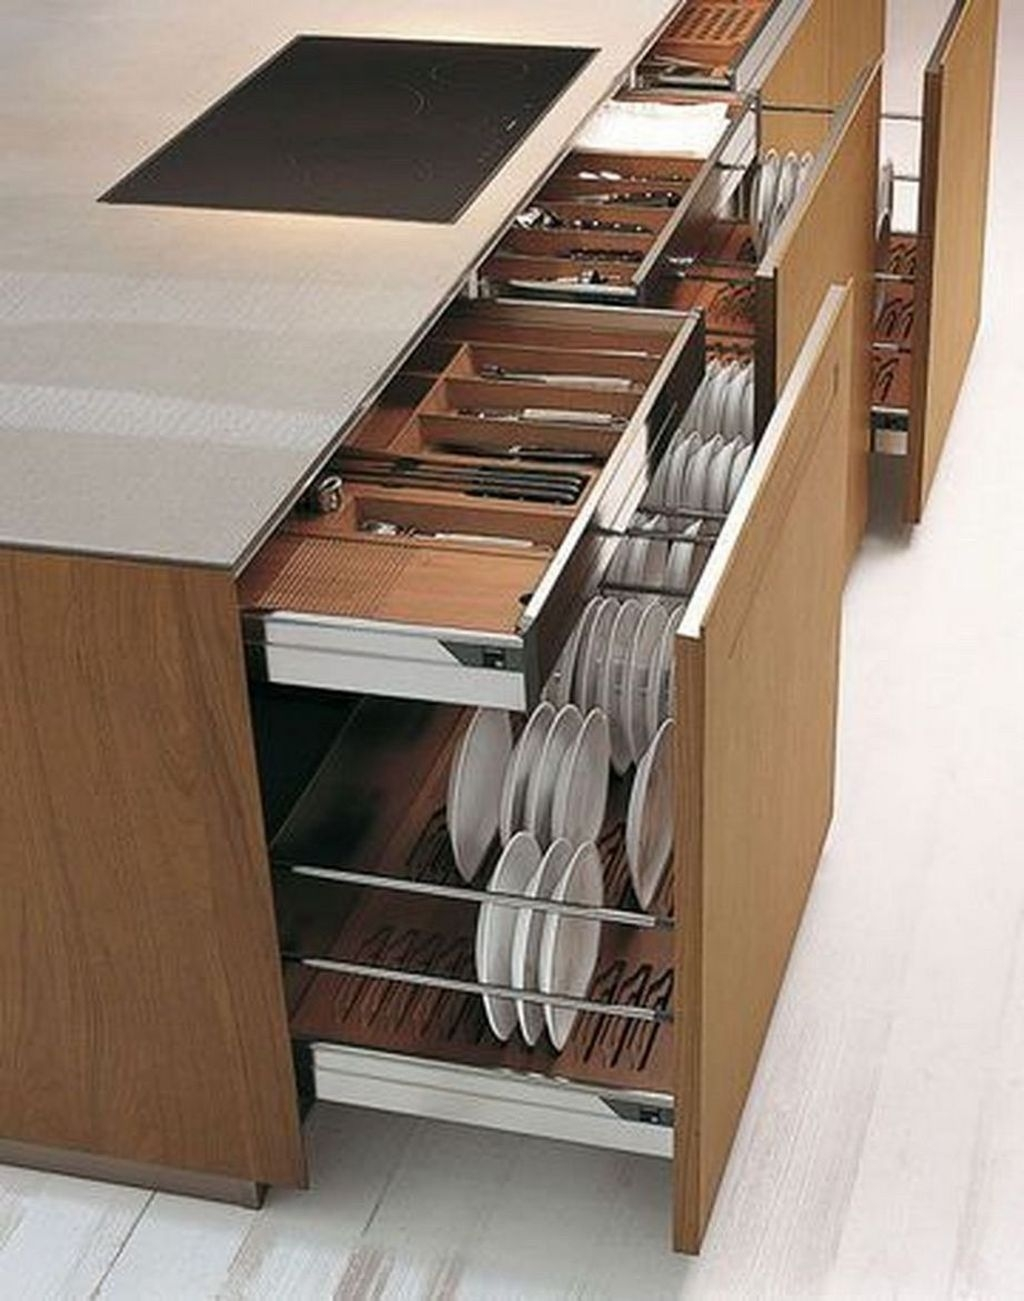 Inspiring Kitchen Storage Design Ideas 26